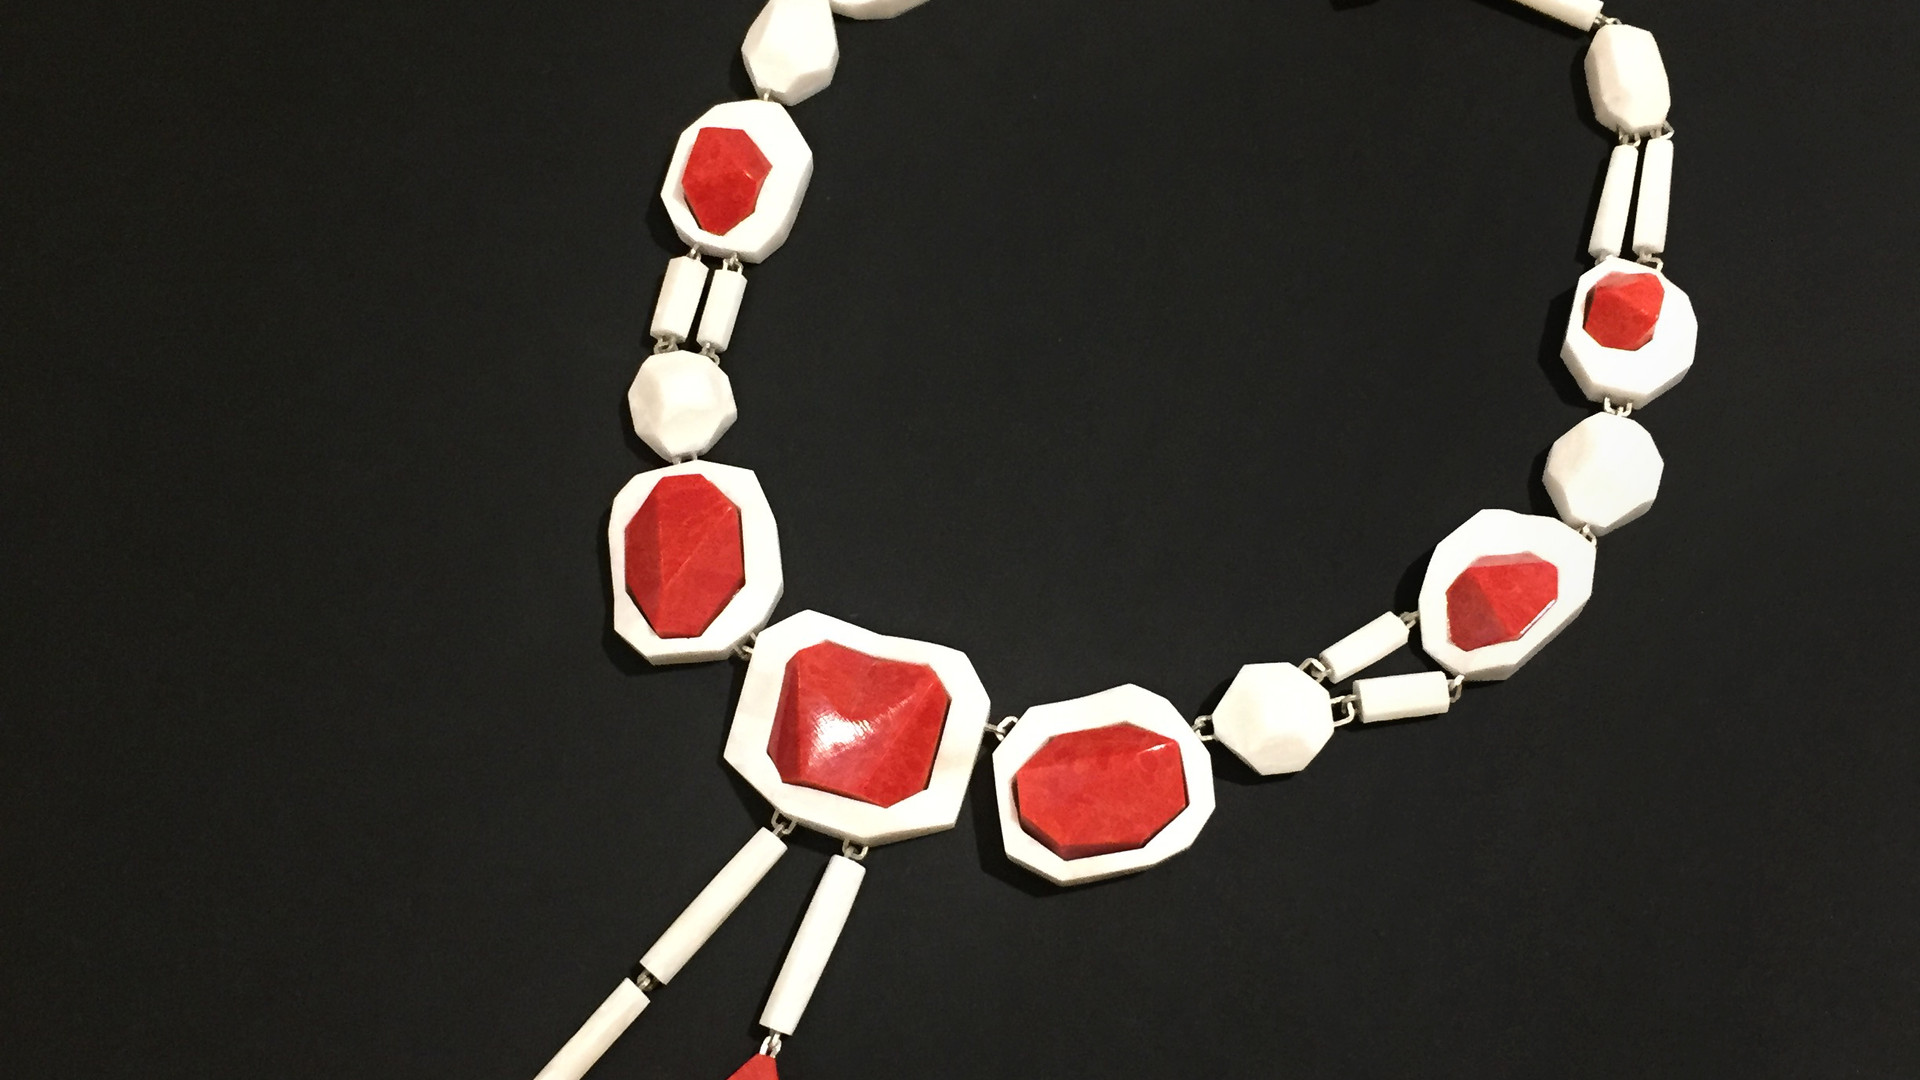 Necklace by Annika Pettersson